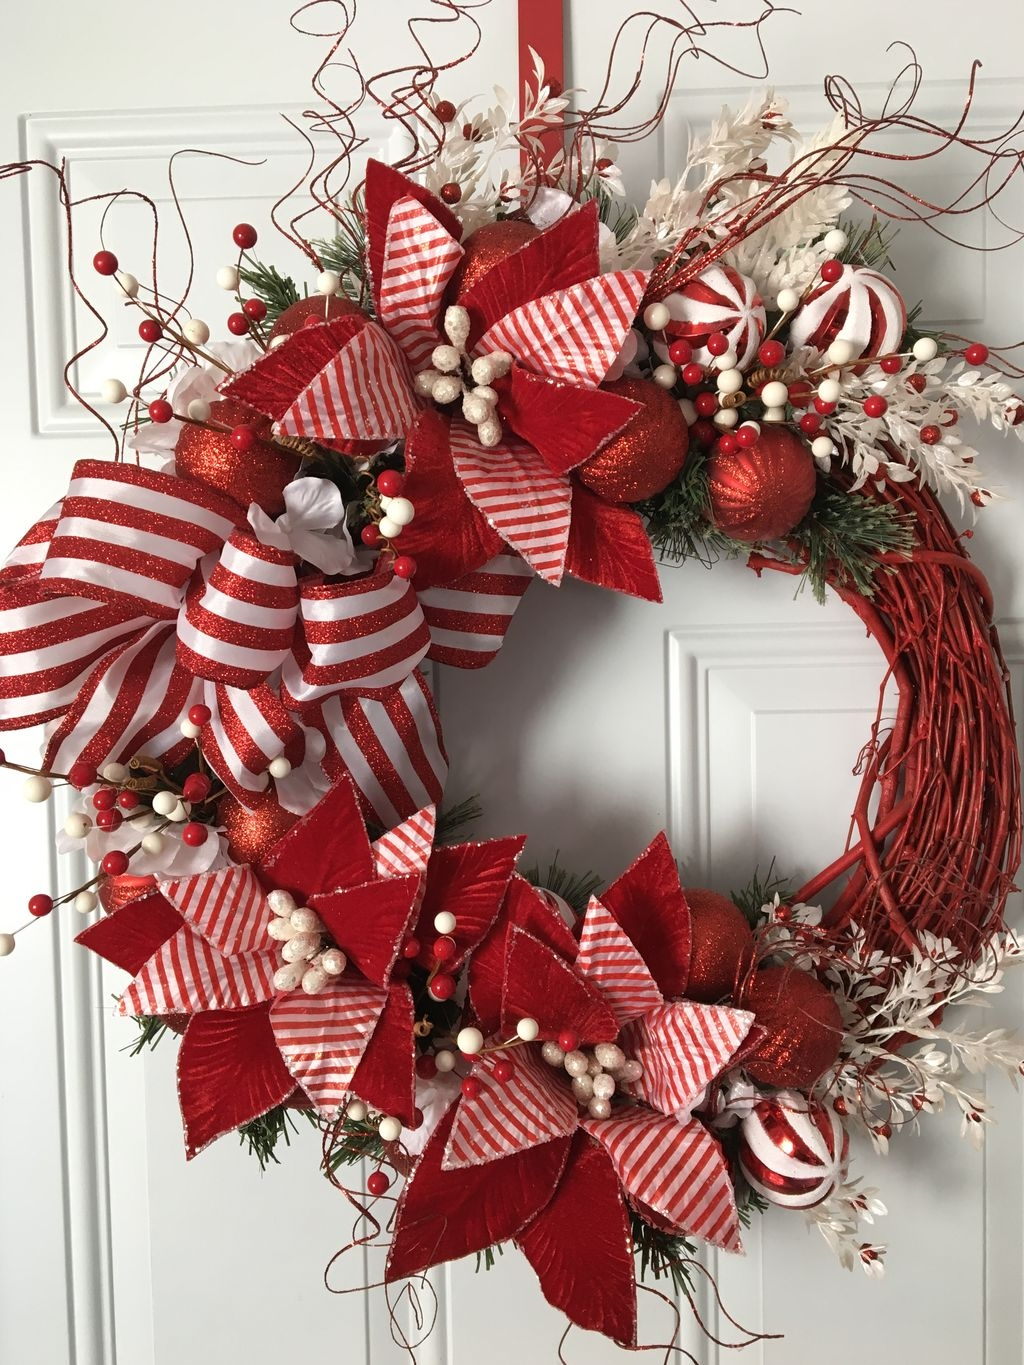 Colorful Christmas Wreaths Decoration Ideas For Your Front Door 21